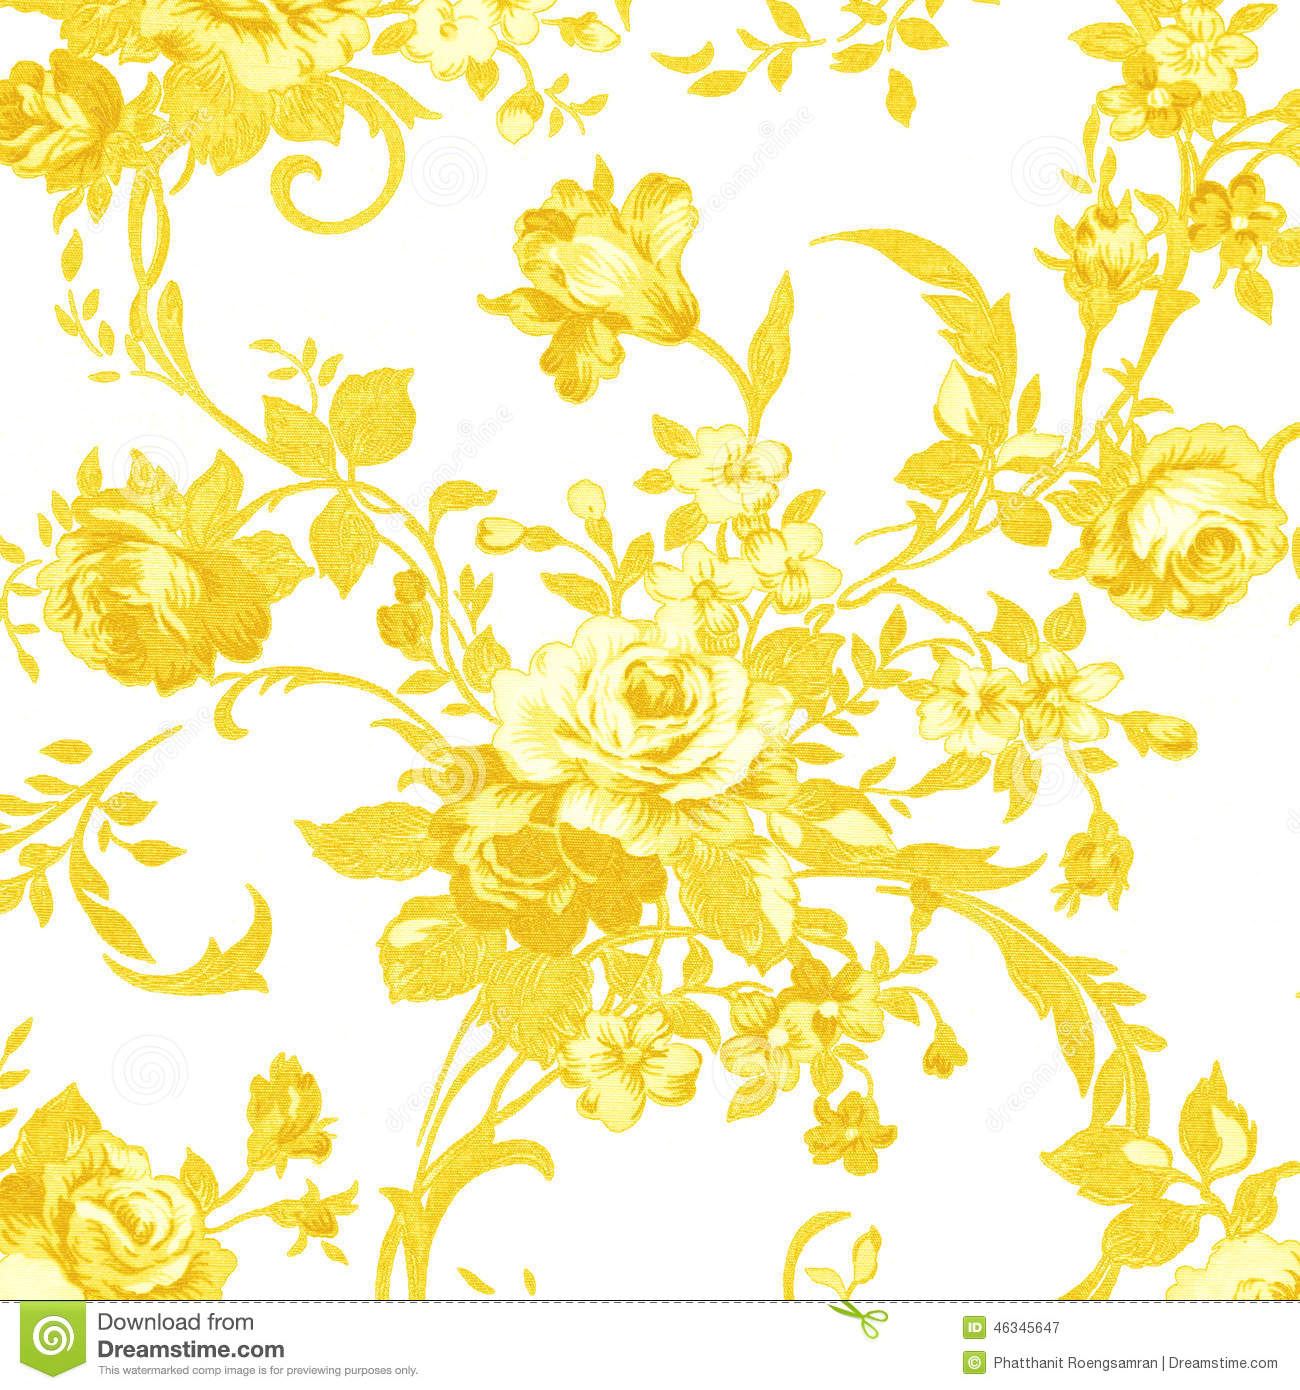 Magnificent White And Yellow Fabric Ideas - Bathtub for Bathroom ...